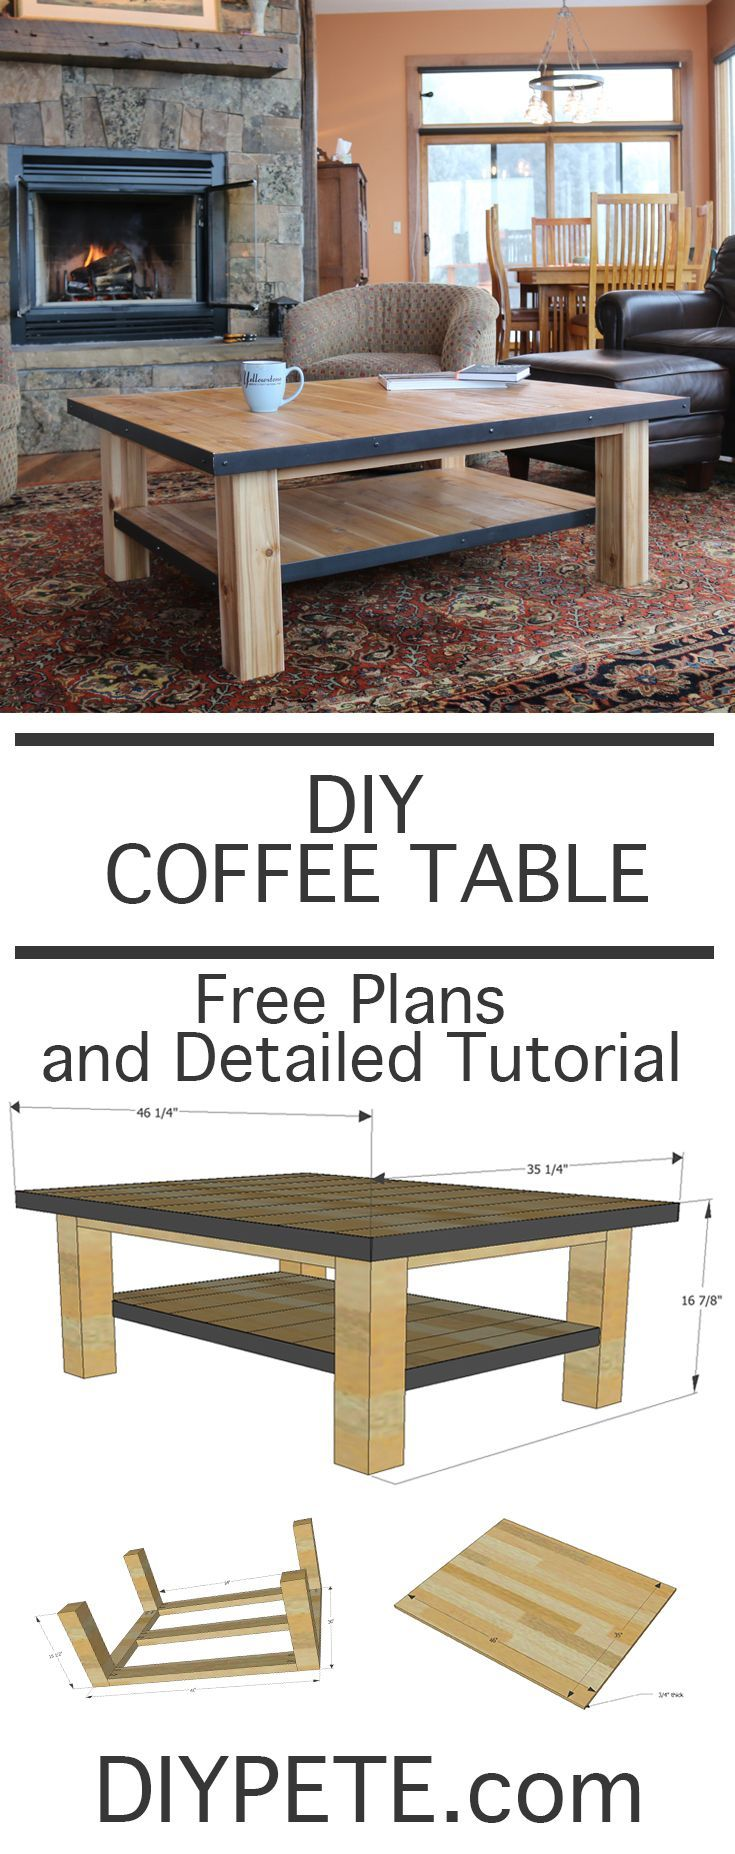 How To Make A Wood Coffee Table With Steel Accents Coffee Table Wood Coffee Table Diy Coffee Table